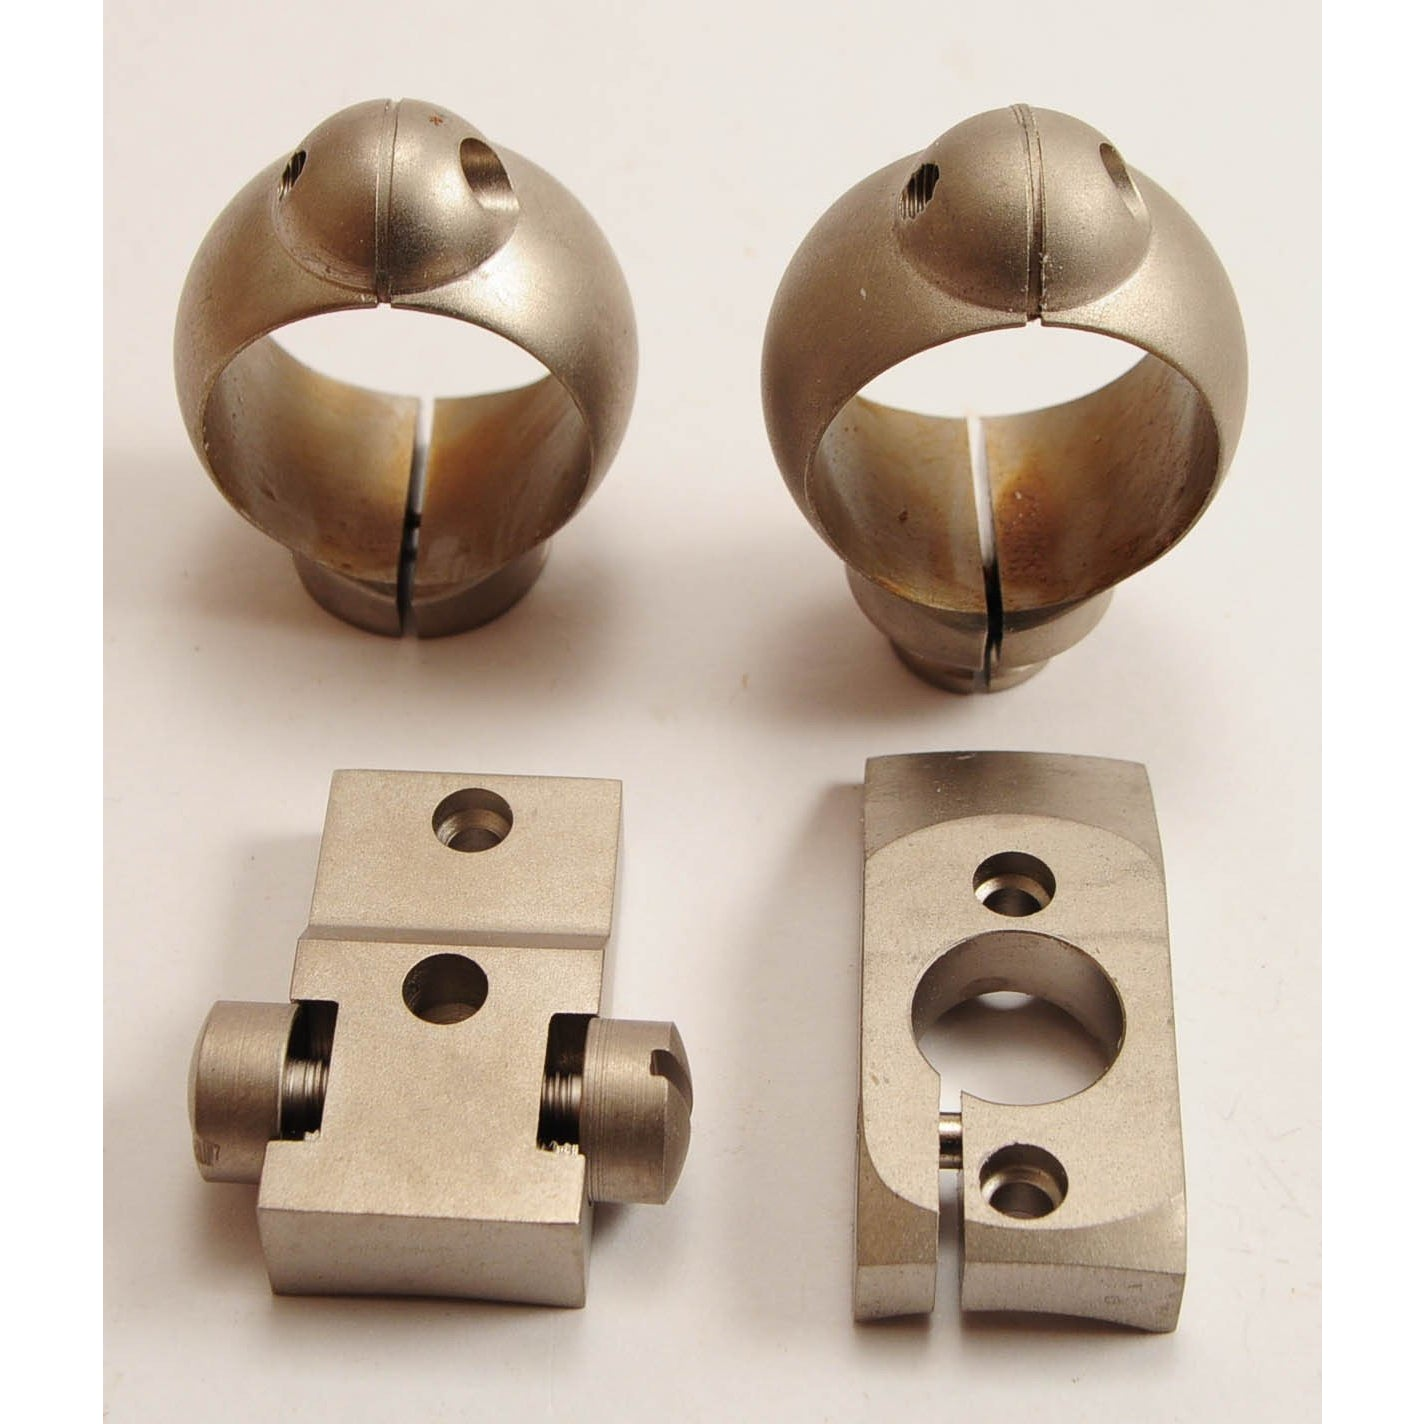 "Buehler Nickel 1"" High Rings and Bases for Rem M700 & Wtby Mk V,Used Optics & Accessories- Canada Brass"